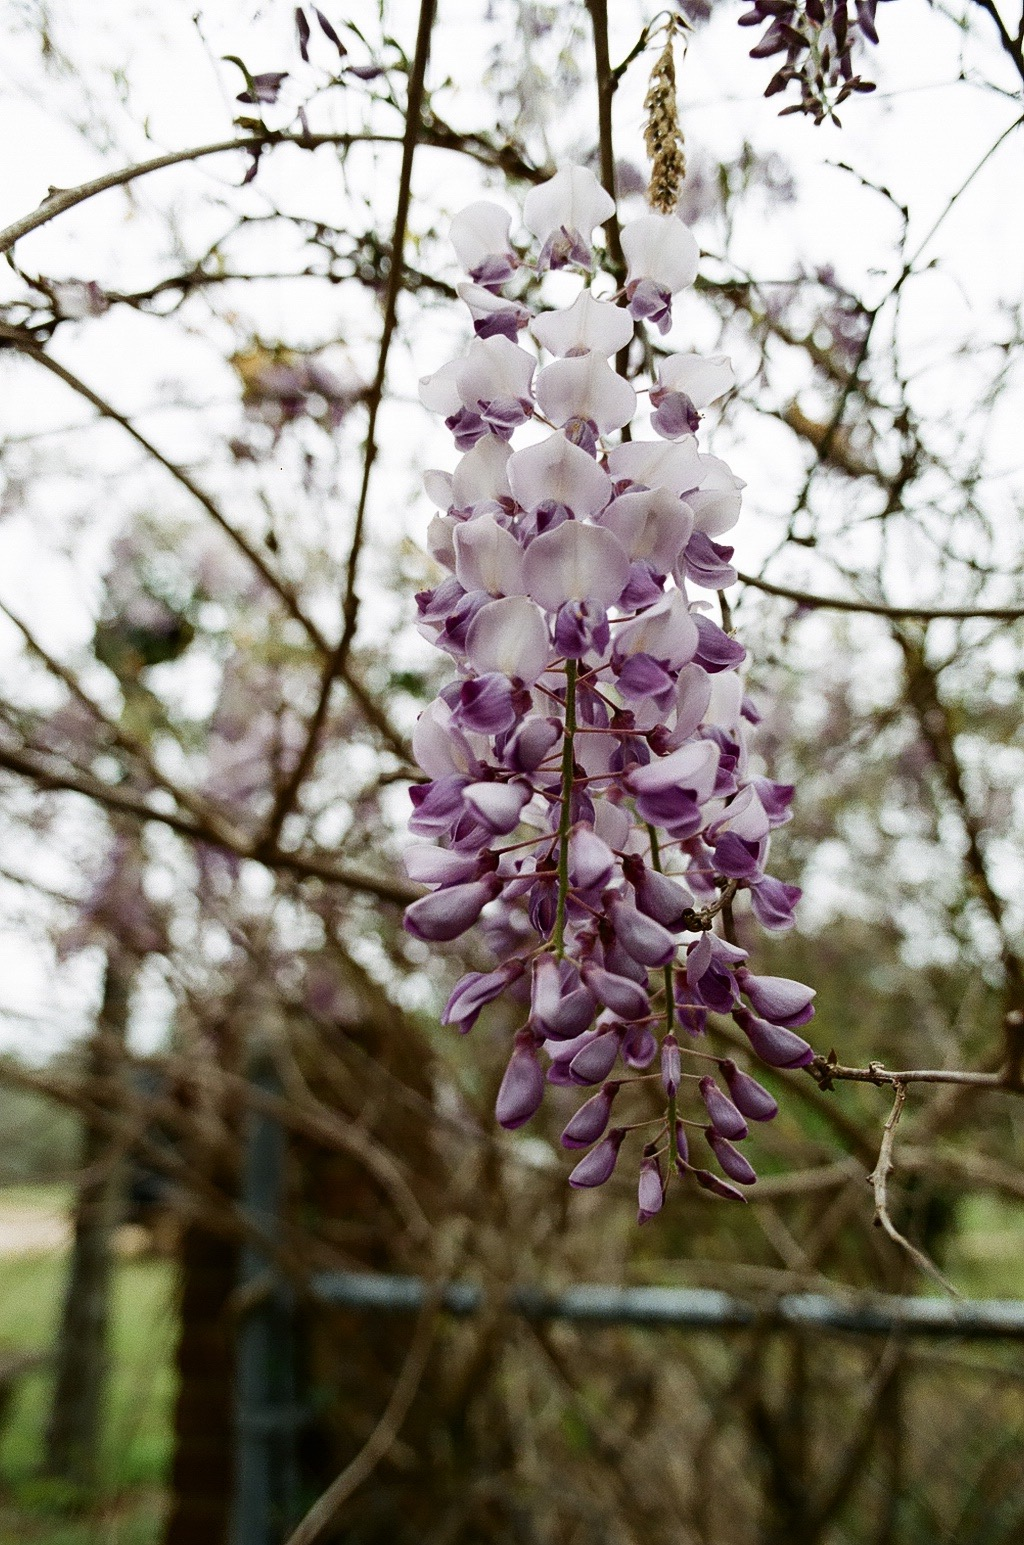 I'd never heard of Wisteria before moving here and despite the fact that my husband likes to remind me that it is invasive, I pretty much want to plant it and let it grow all over my house. It's so pretty!